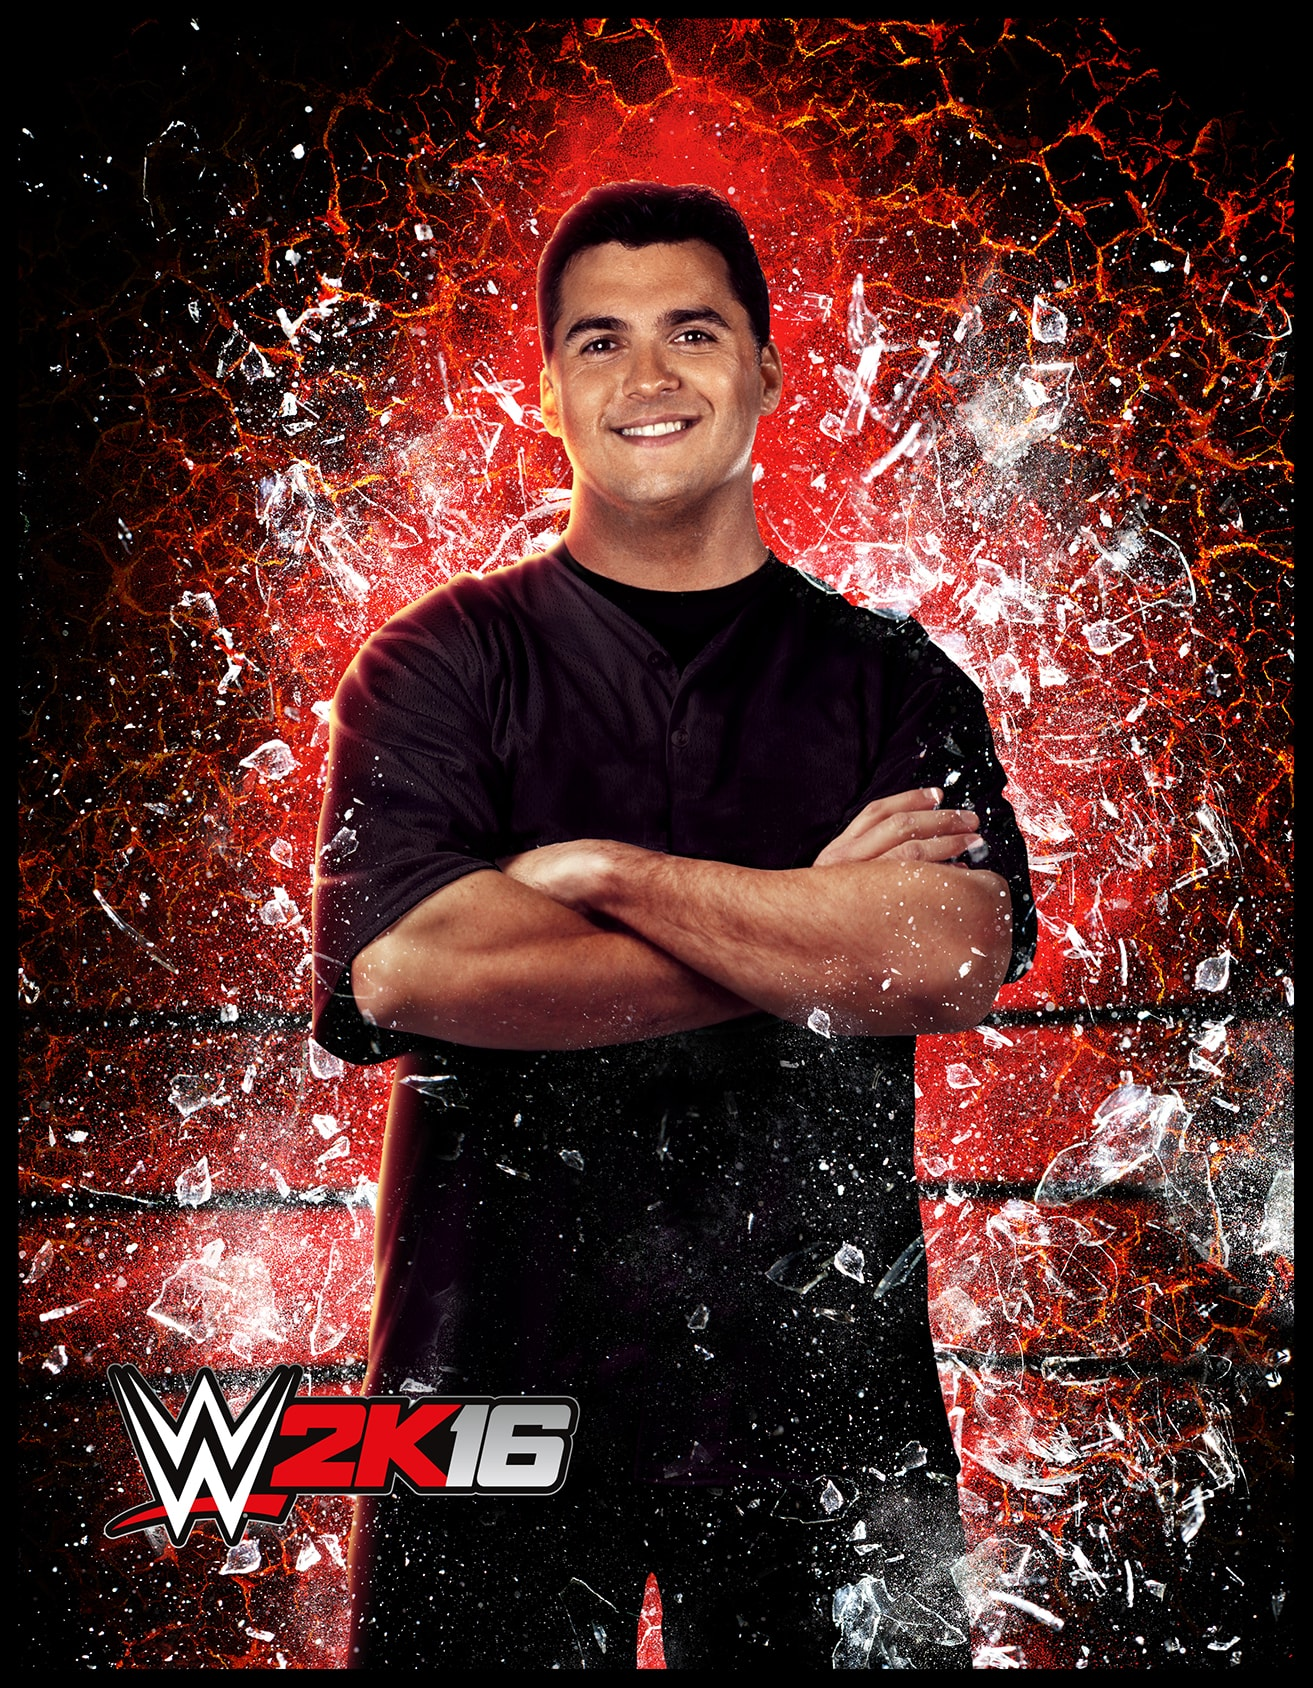 Rikishi Car Wallpaper Wwe 2k16 Ign S Weekly Roster Reveal 5 22 Names Feat